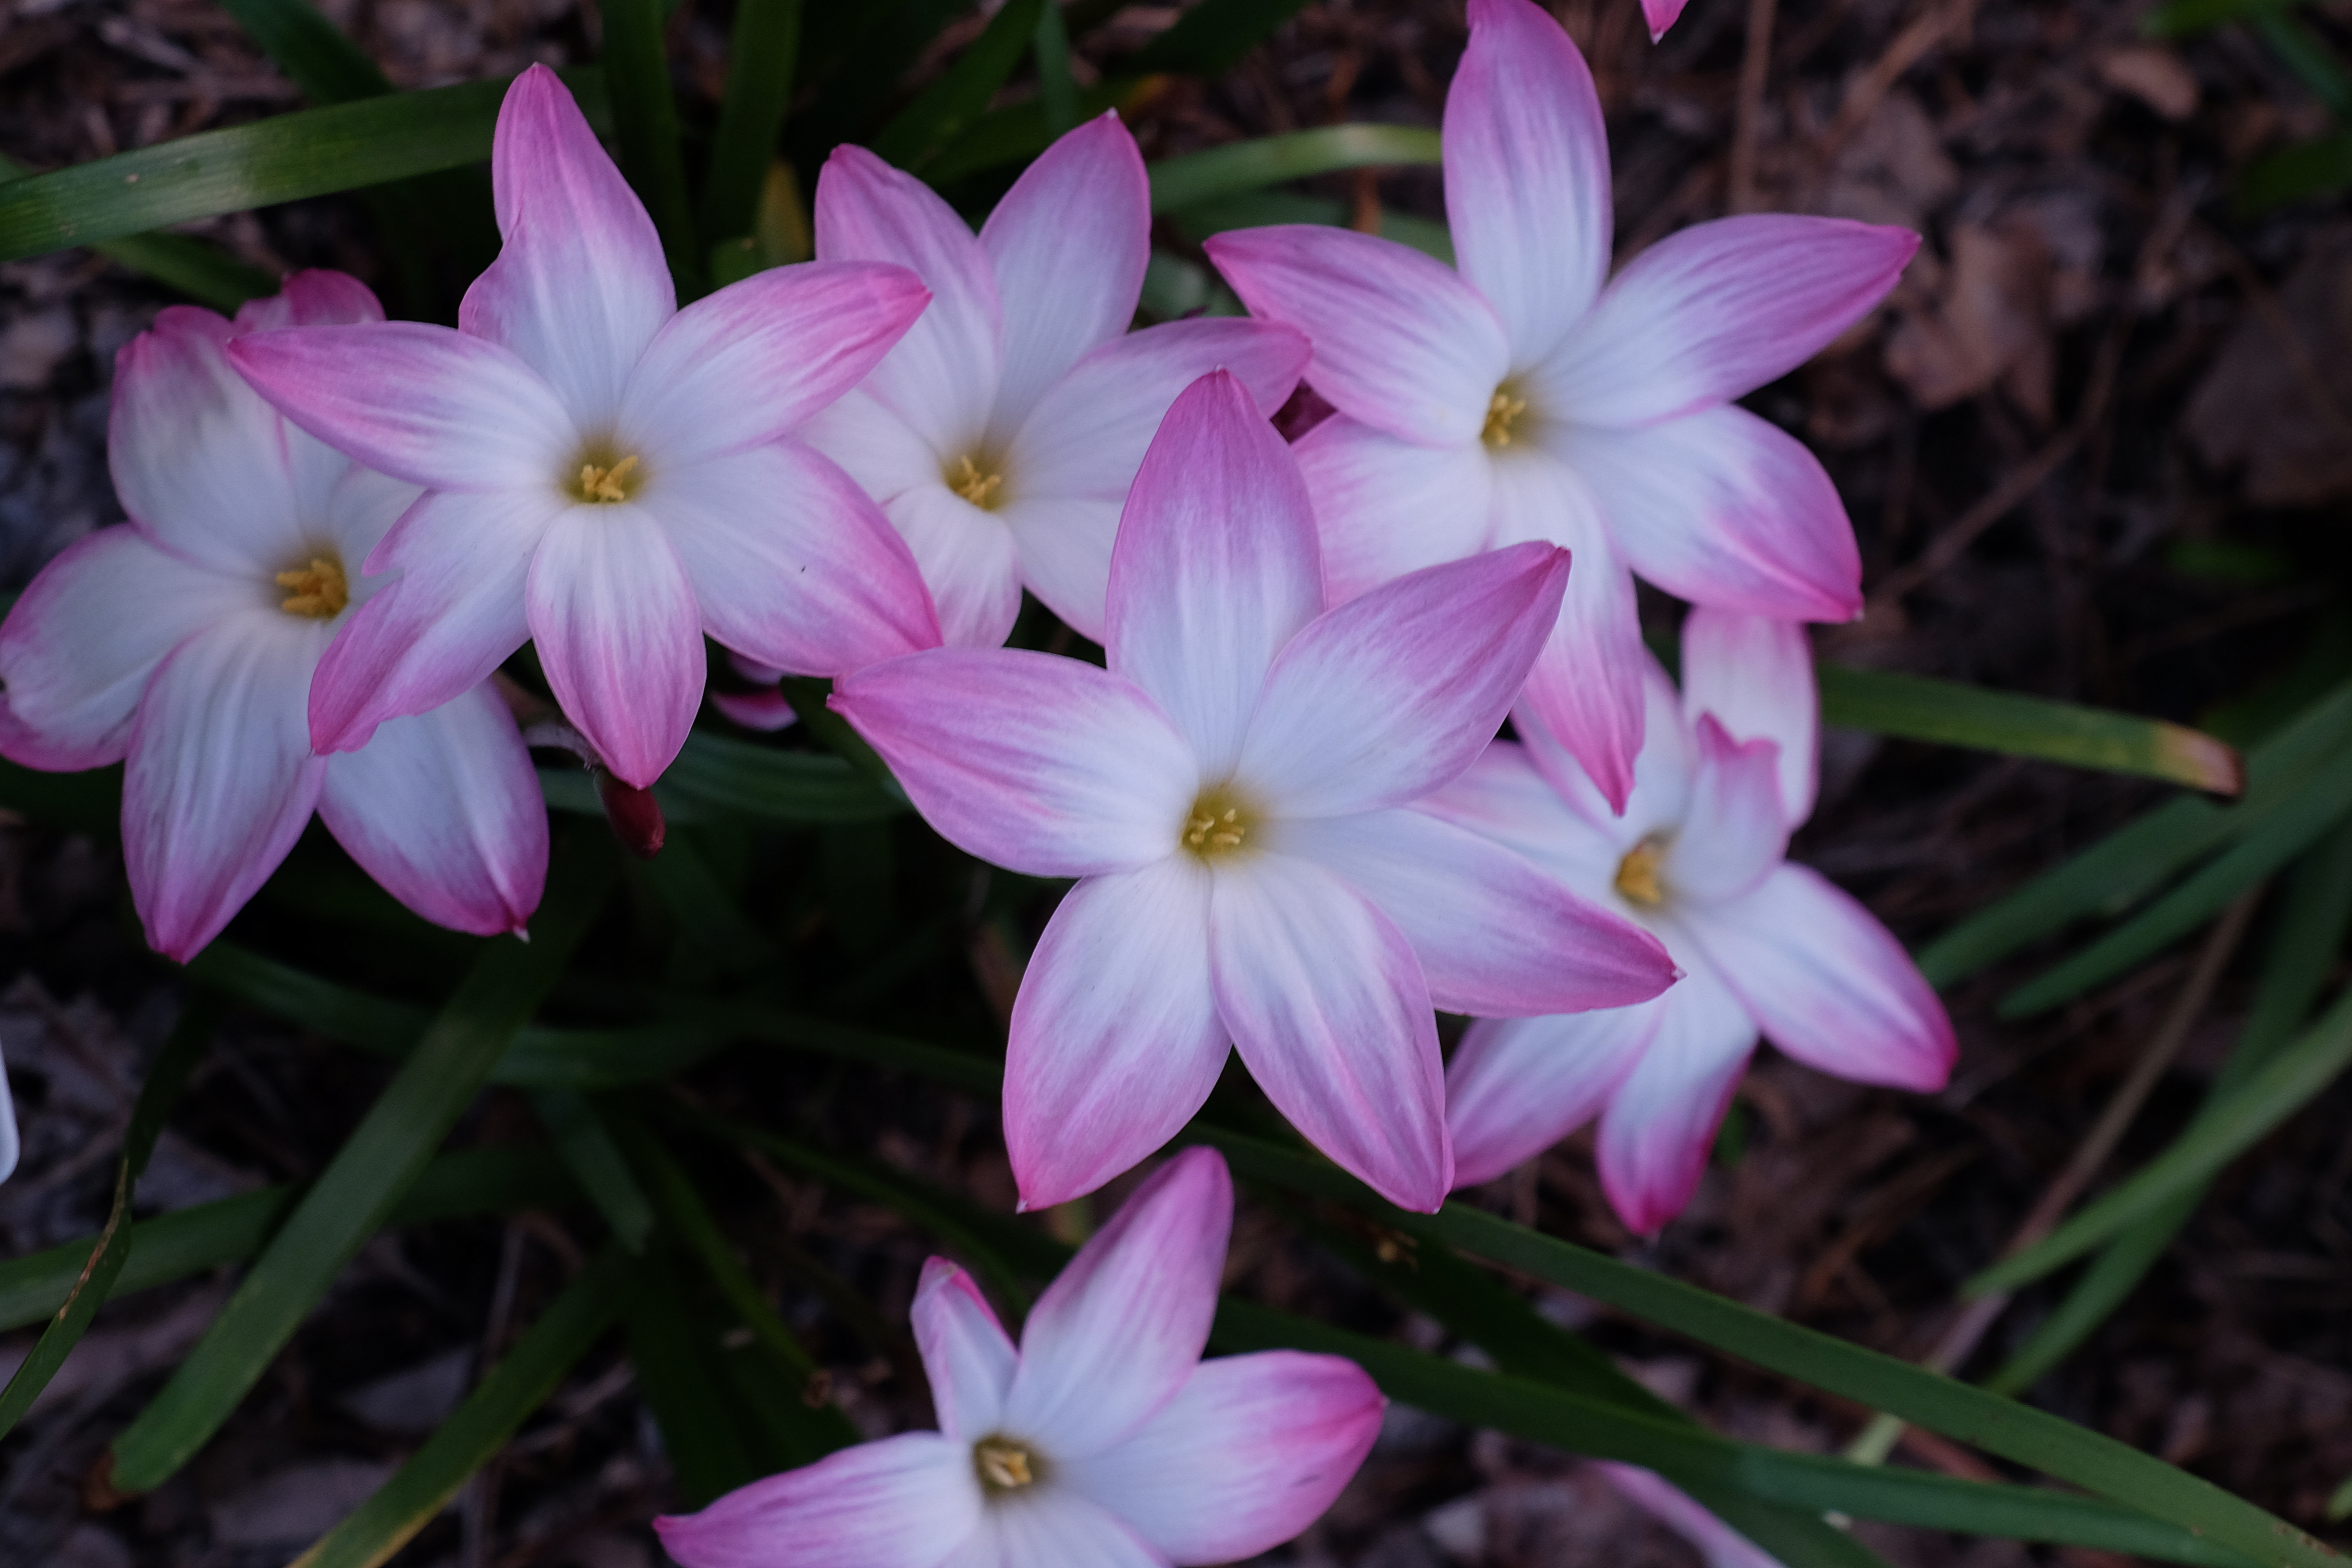 Zephyranthes 'Summers Chill' @ JLBG - a Yucca Do selection from Zephyranthes 'Labuffarosea'